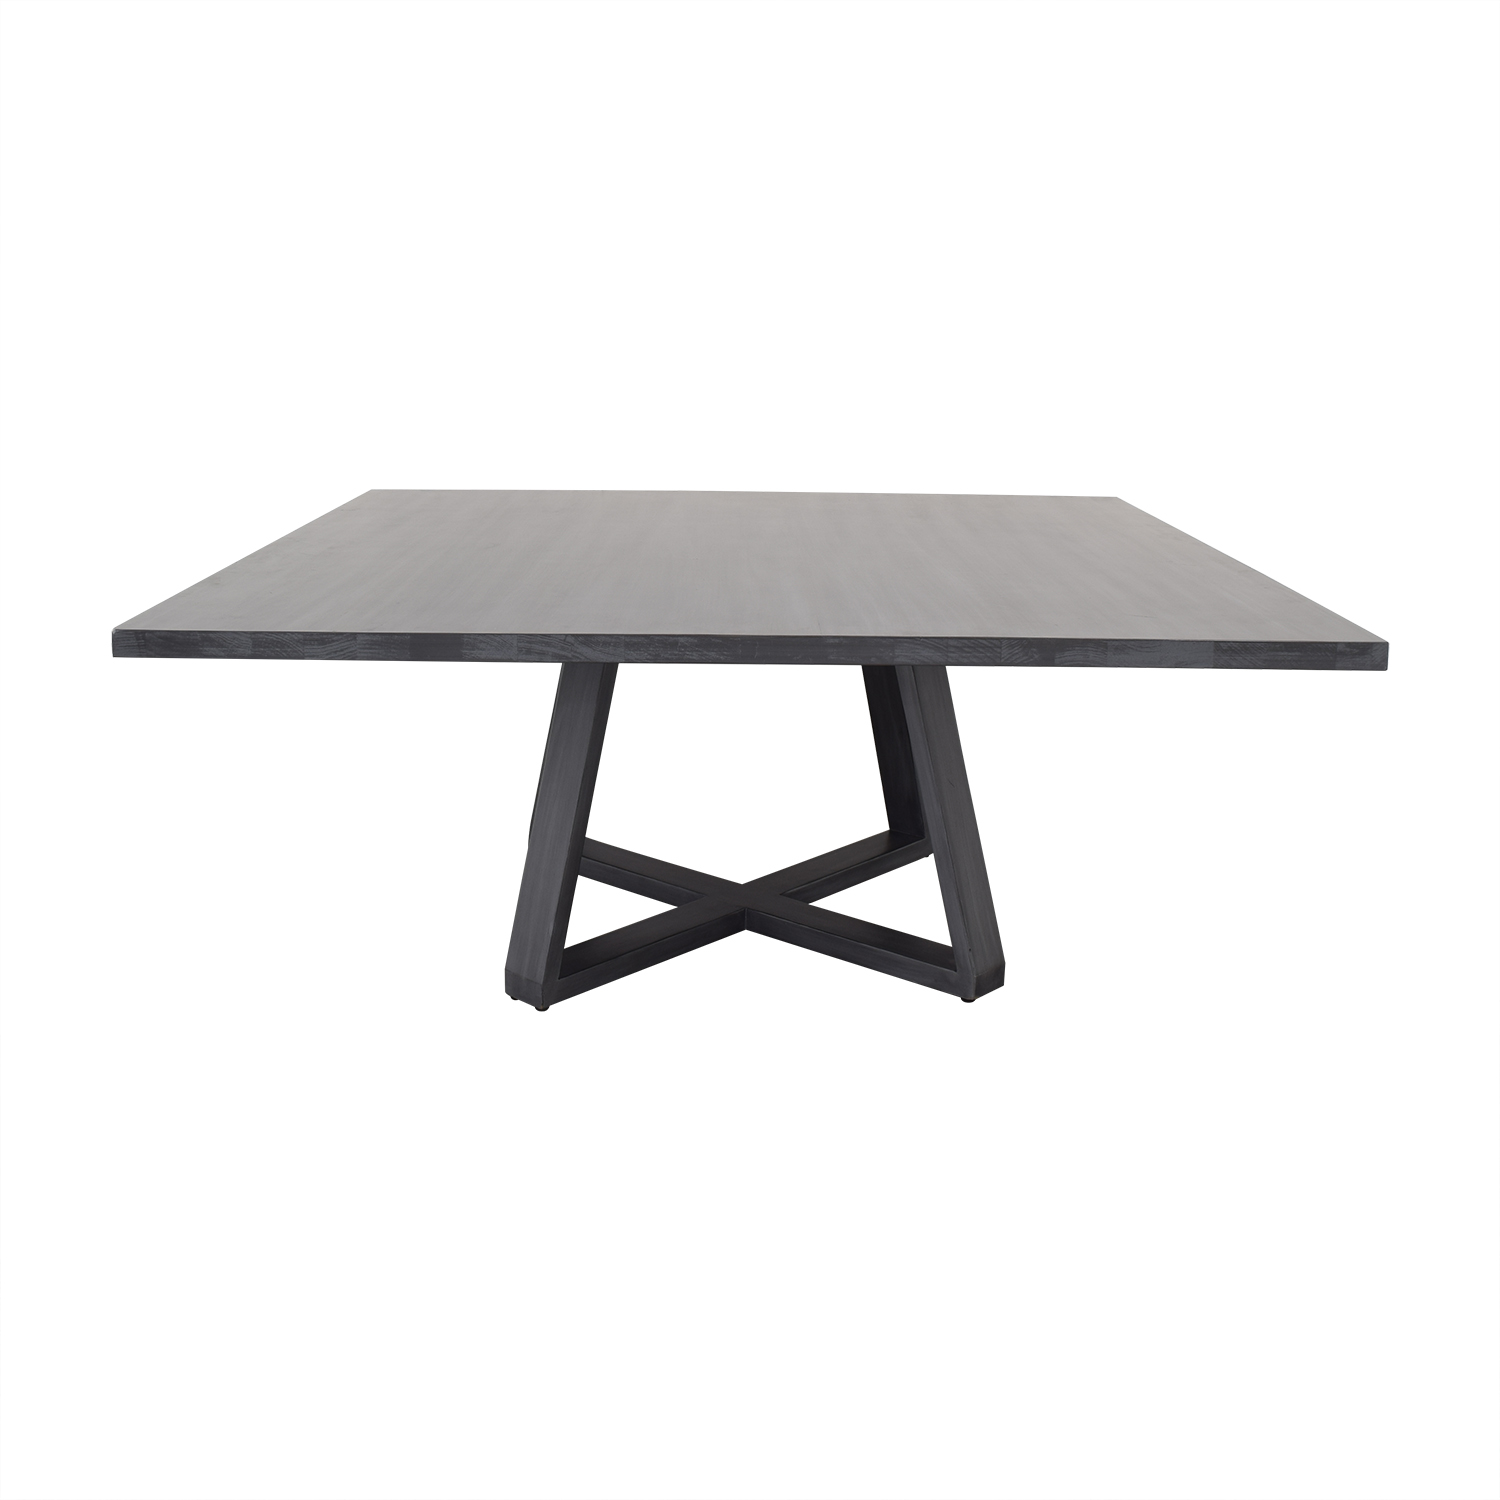 South Cone Furniture South Cone Furniture Andre Square Dining Table dimensions